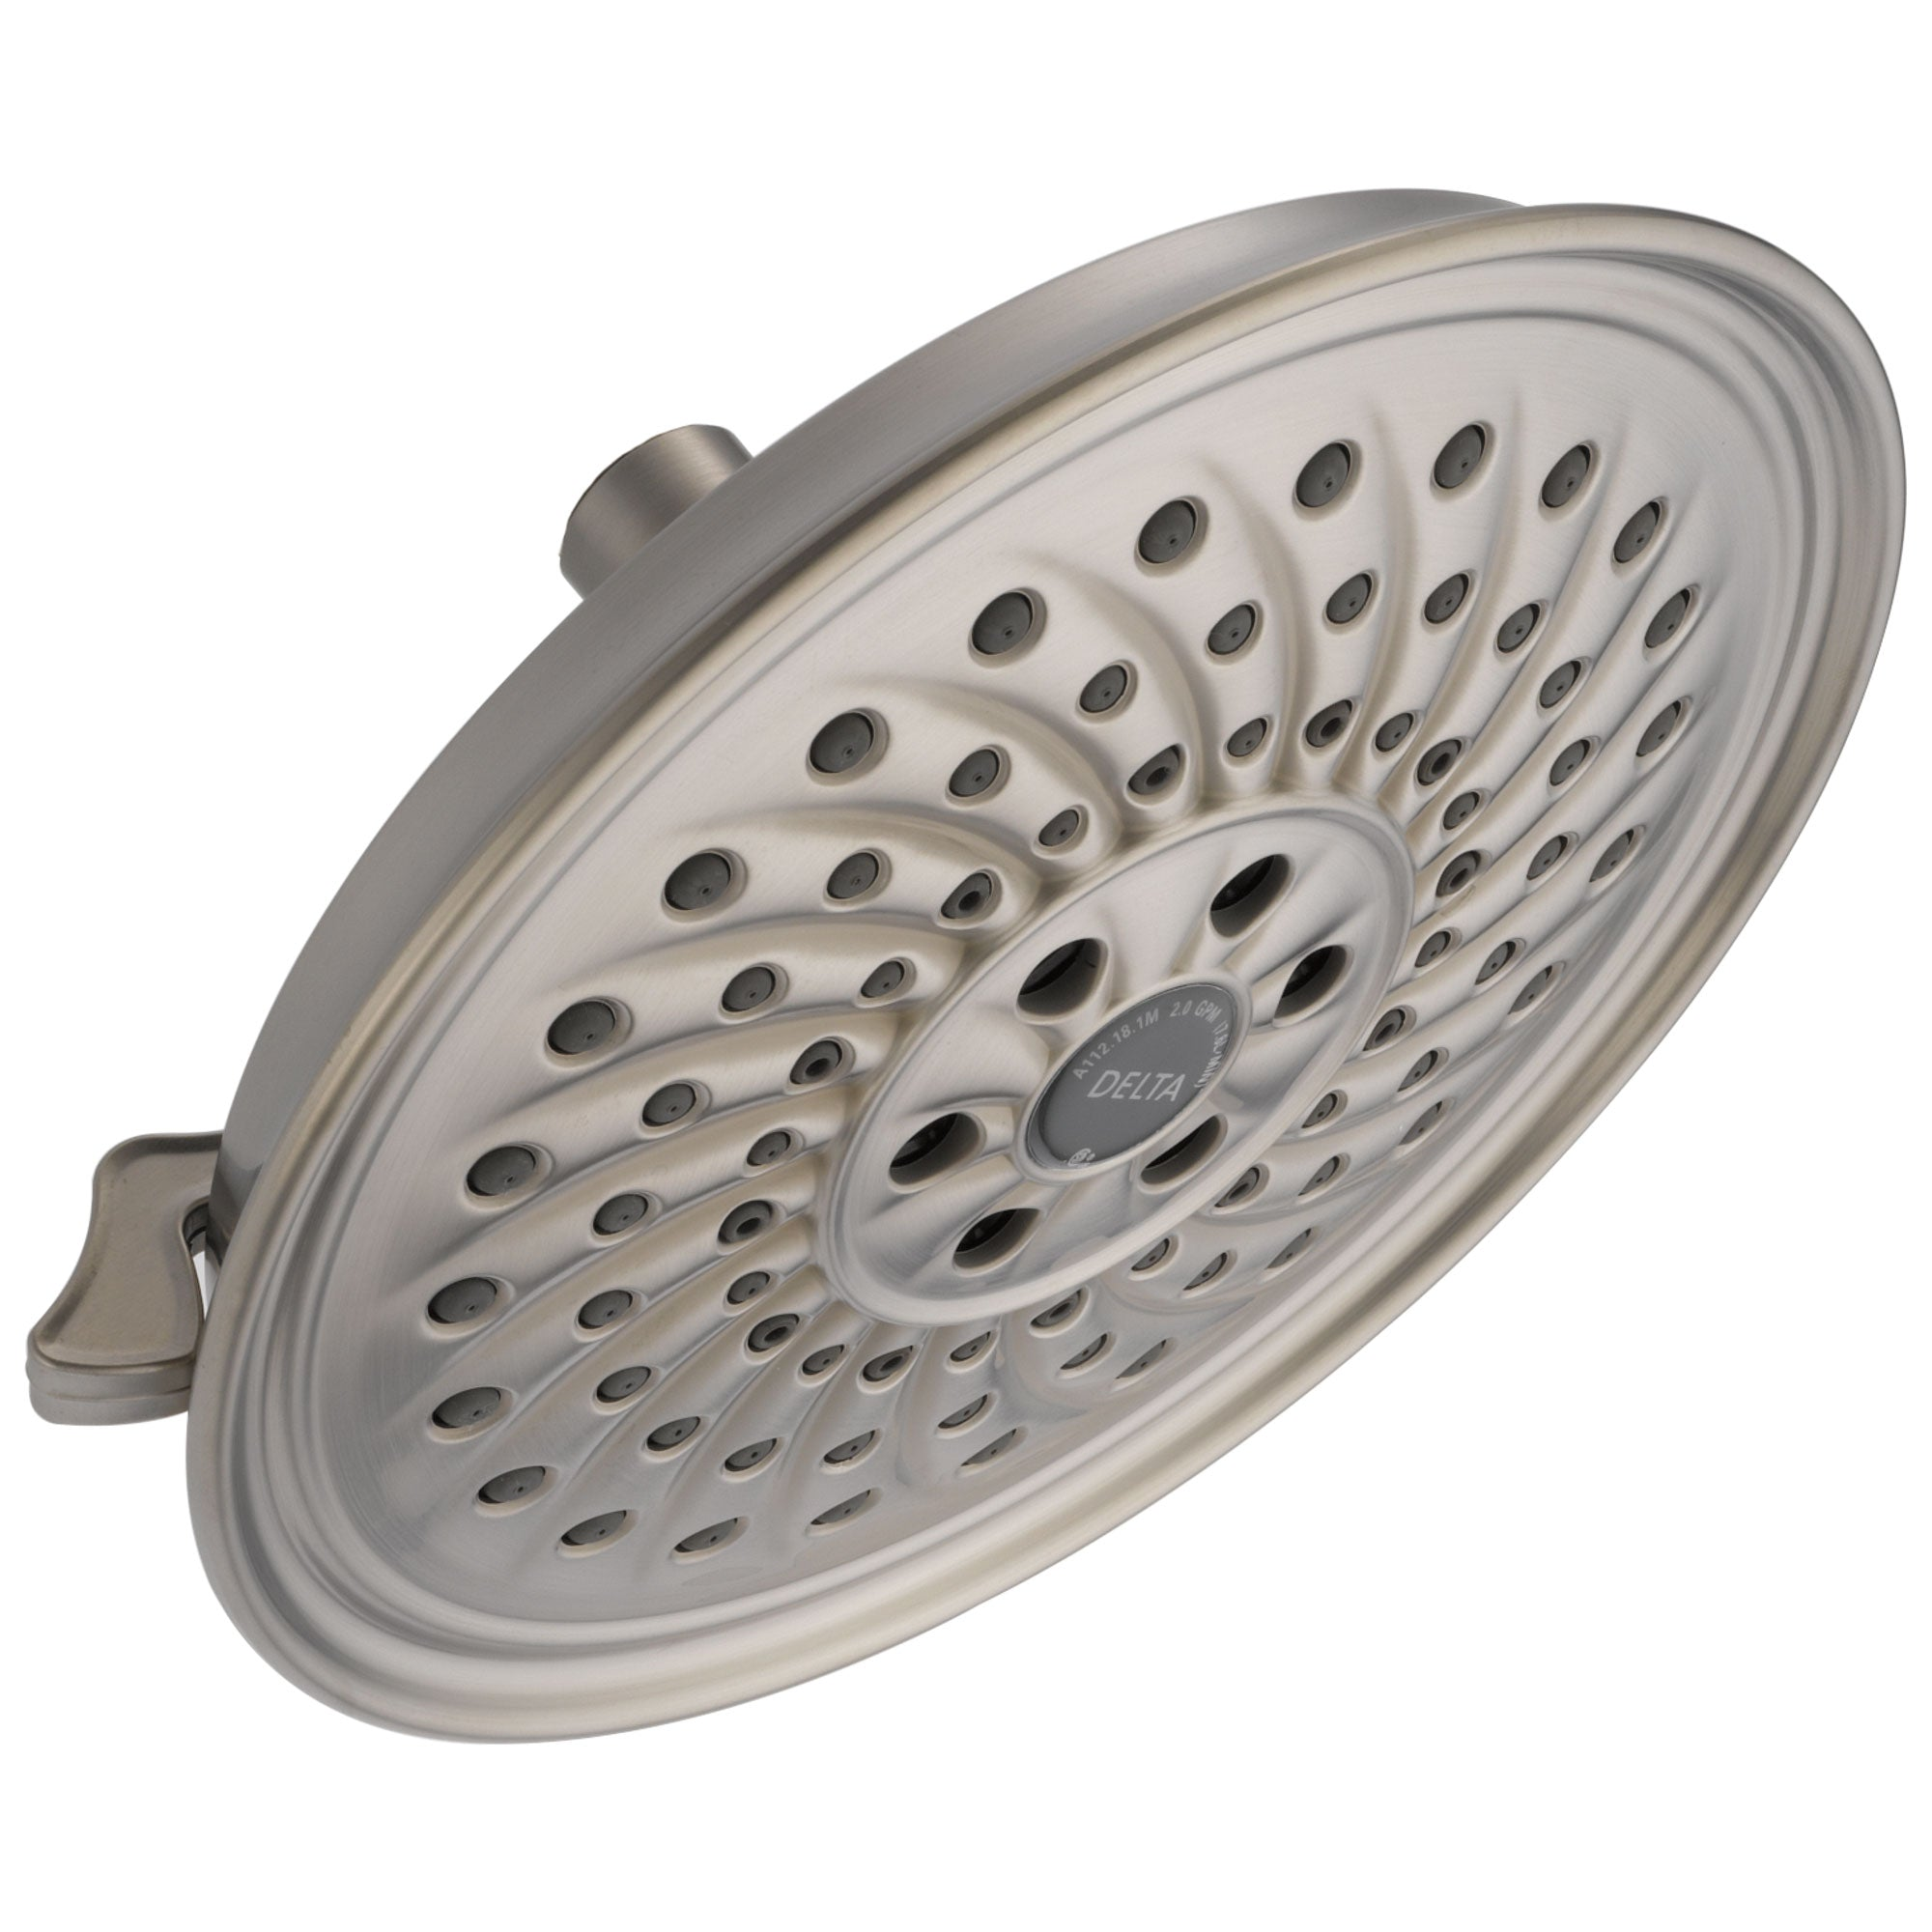 Delta Universal Showering Components Collection Stainless Steel Finish H2Okinetic 3-Setting Round Raincan Shower Head D52687SS